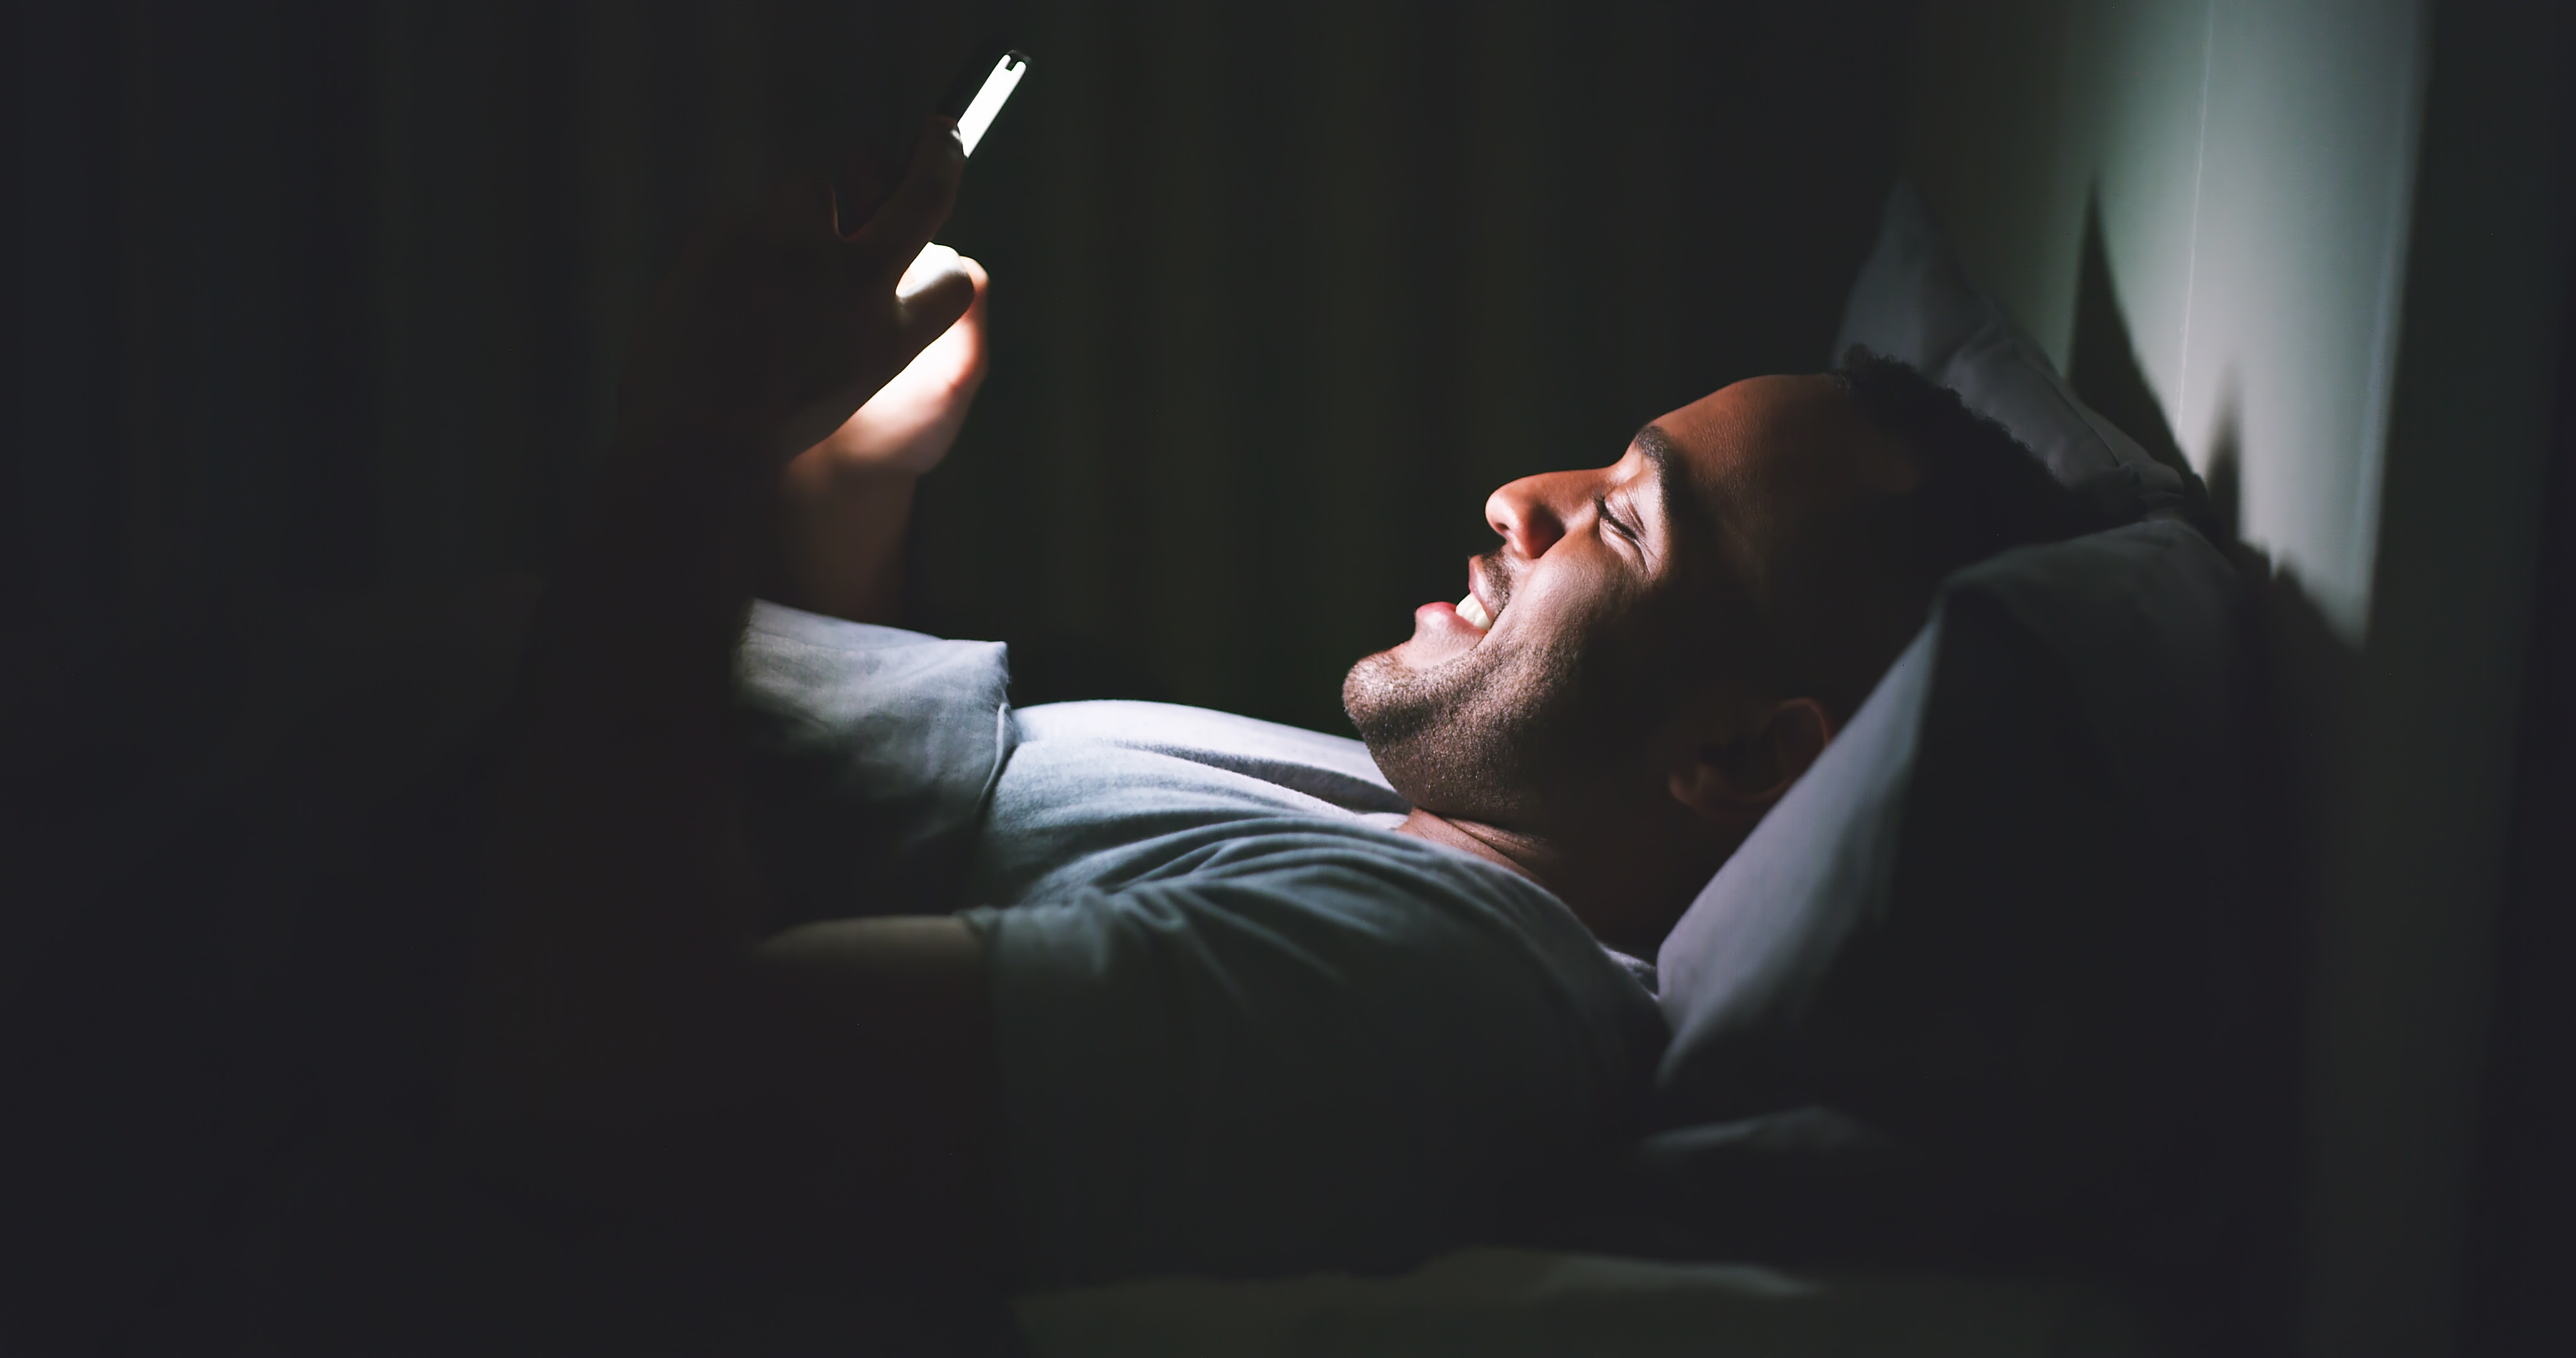 man glued to his phone a nightime